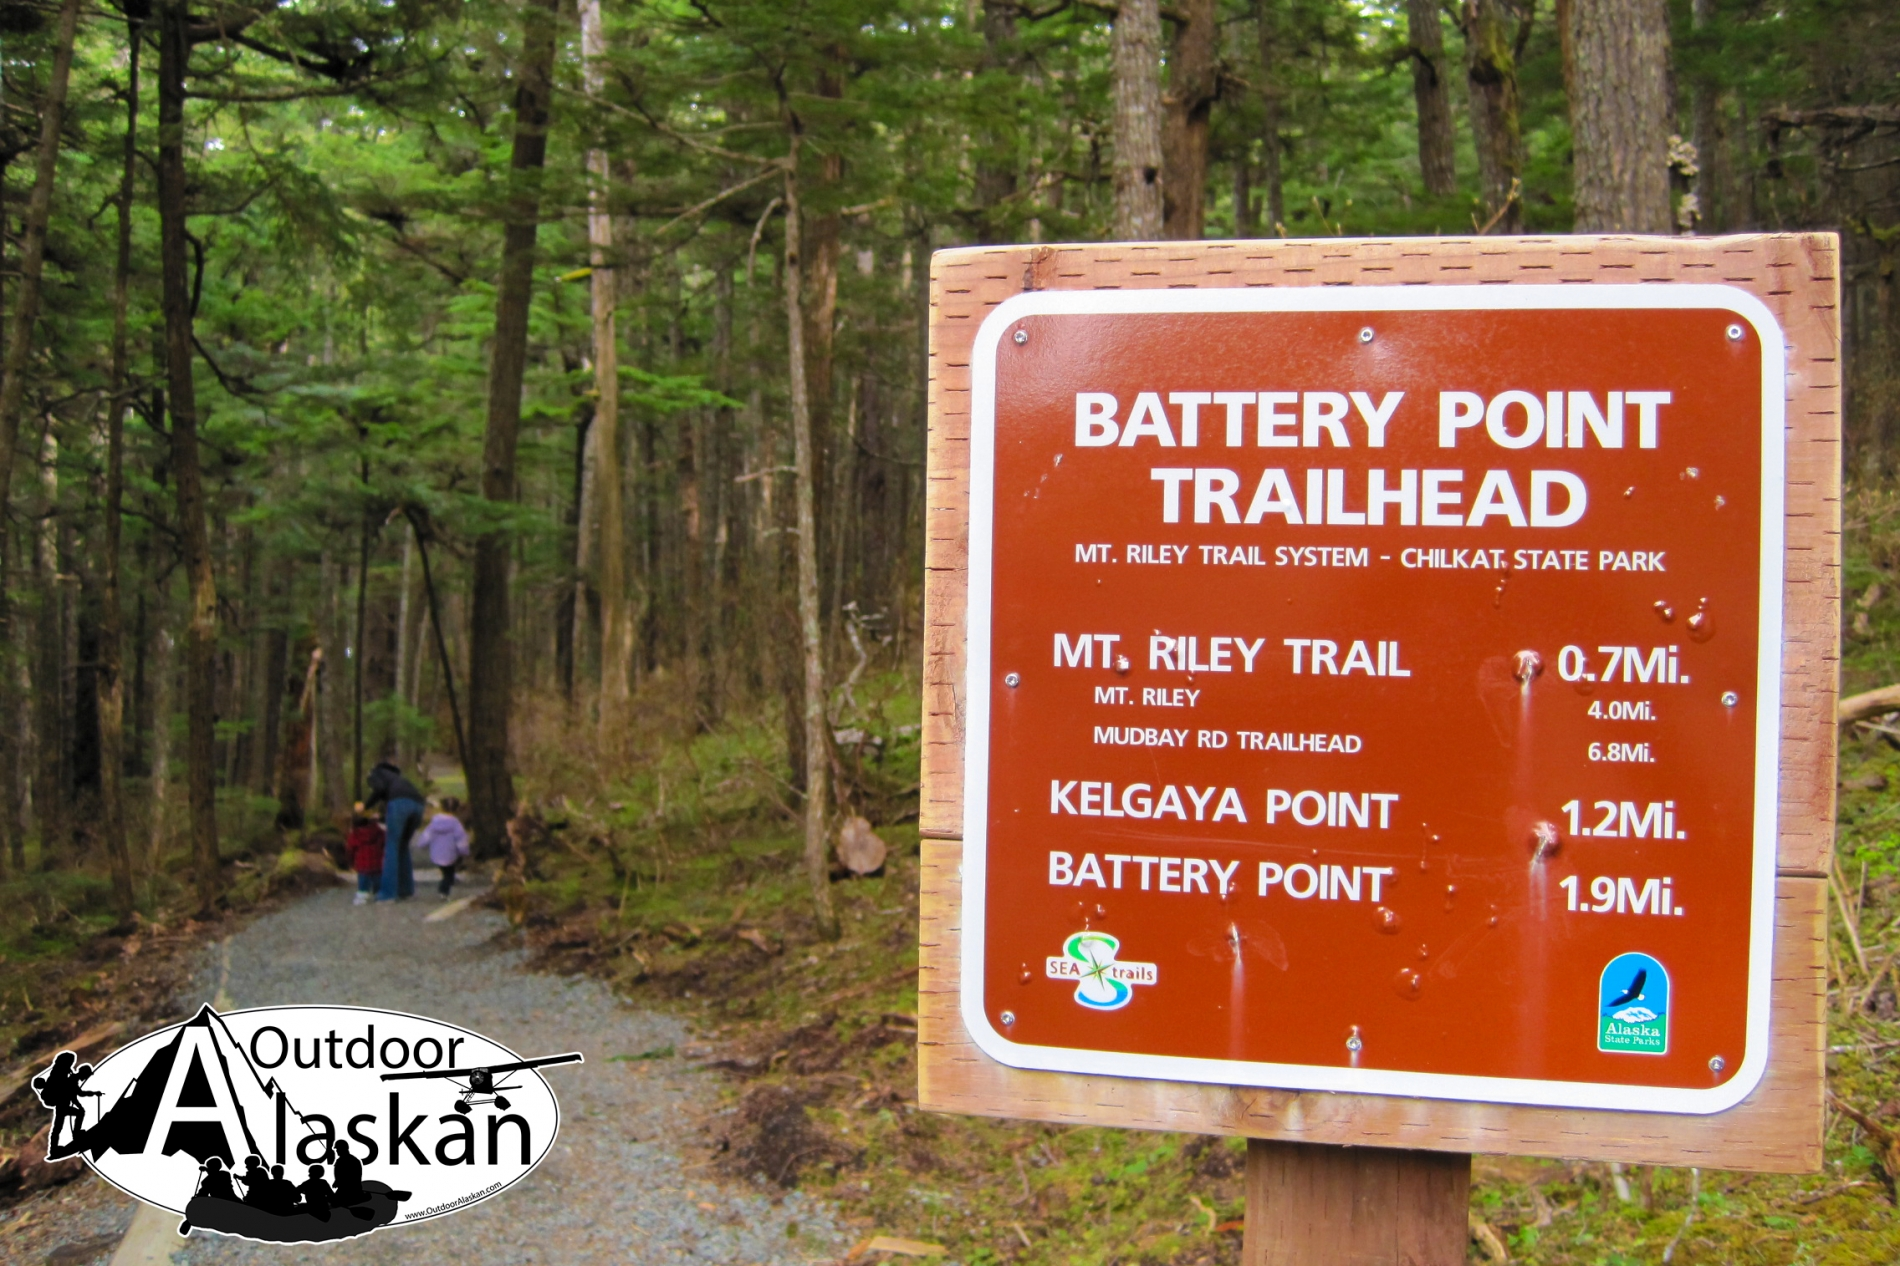 Battery Point Trail head sign.